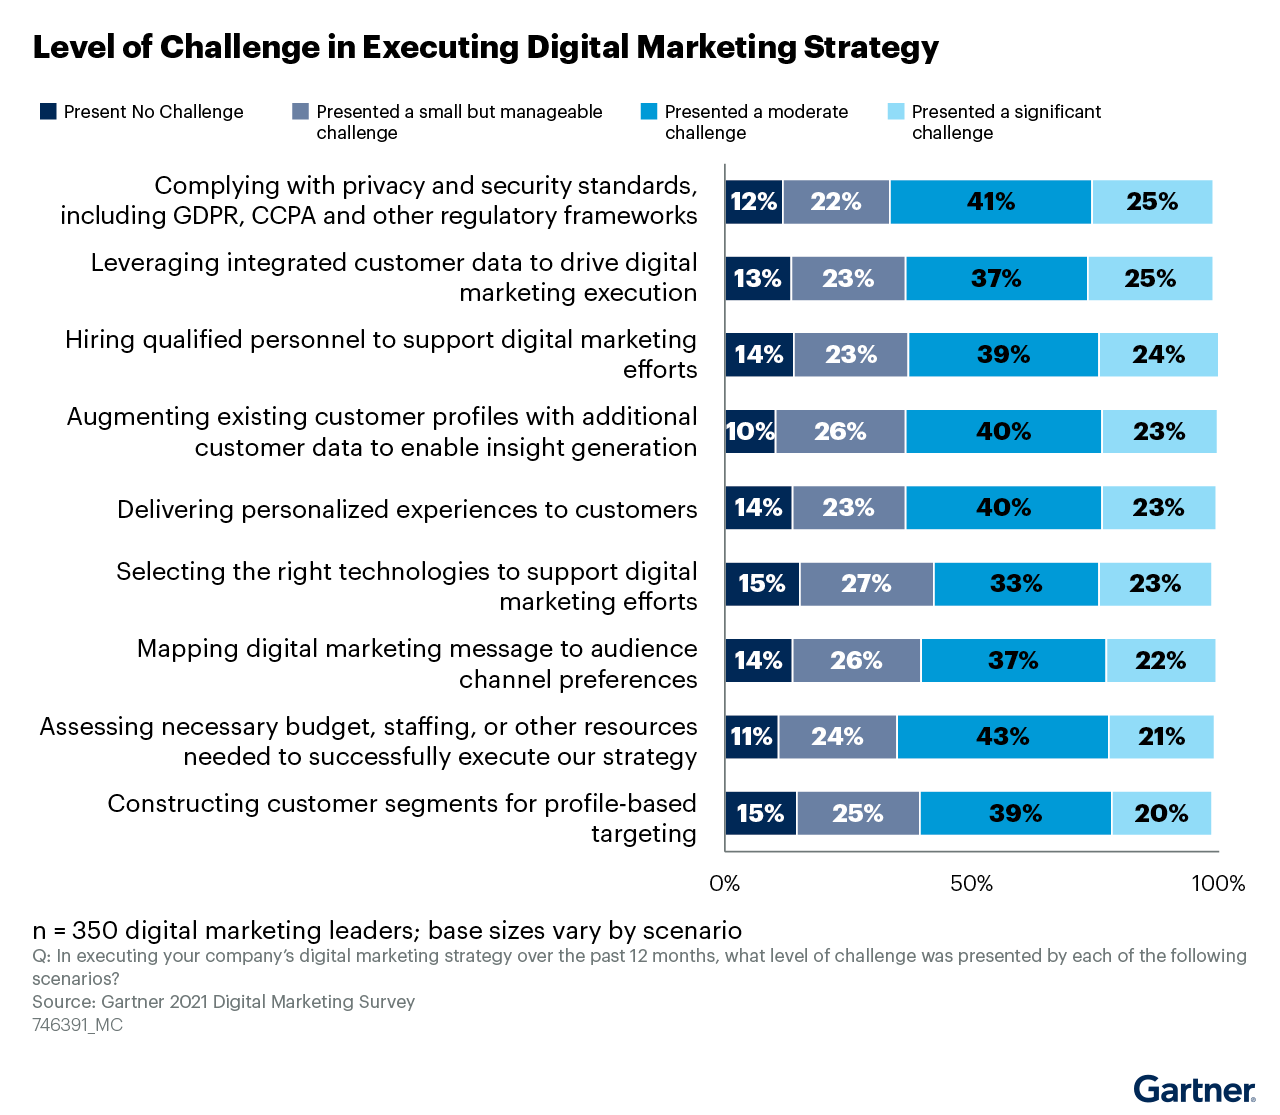 Key challenges for digital marketing leaders in 2021 and 2022